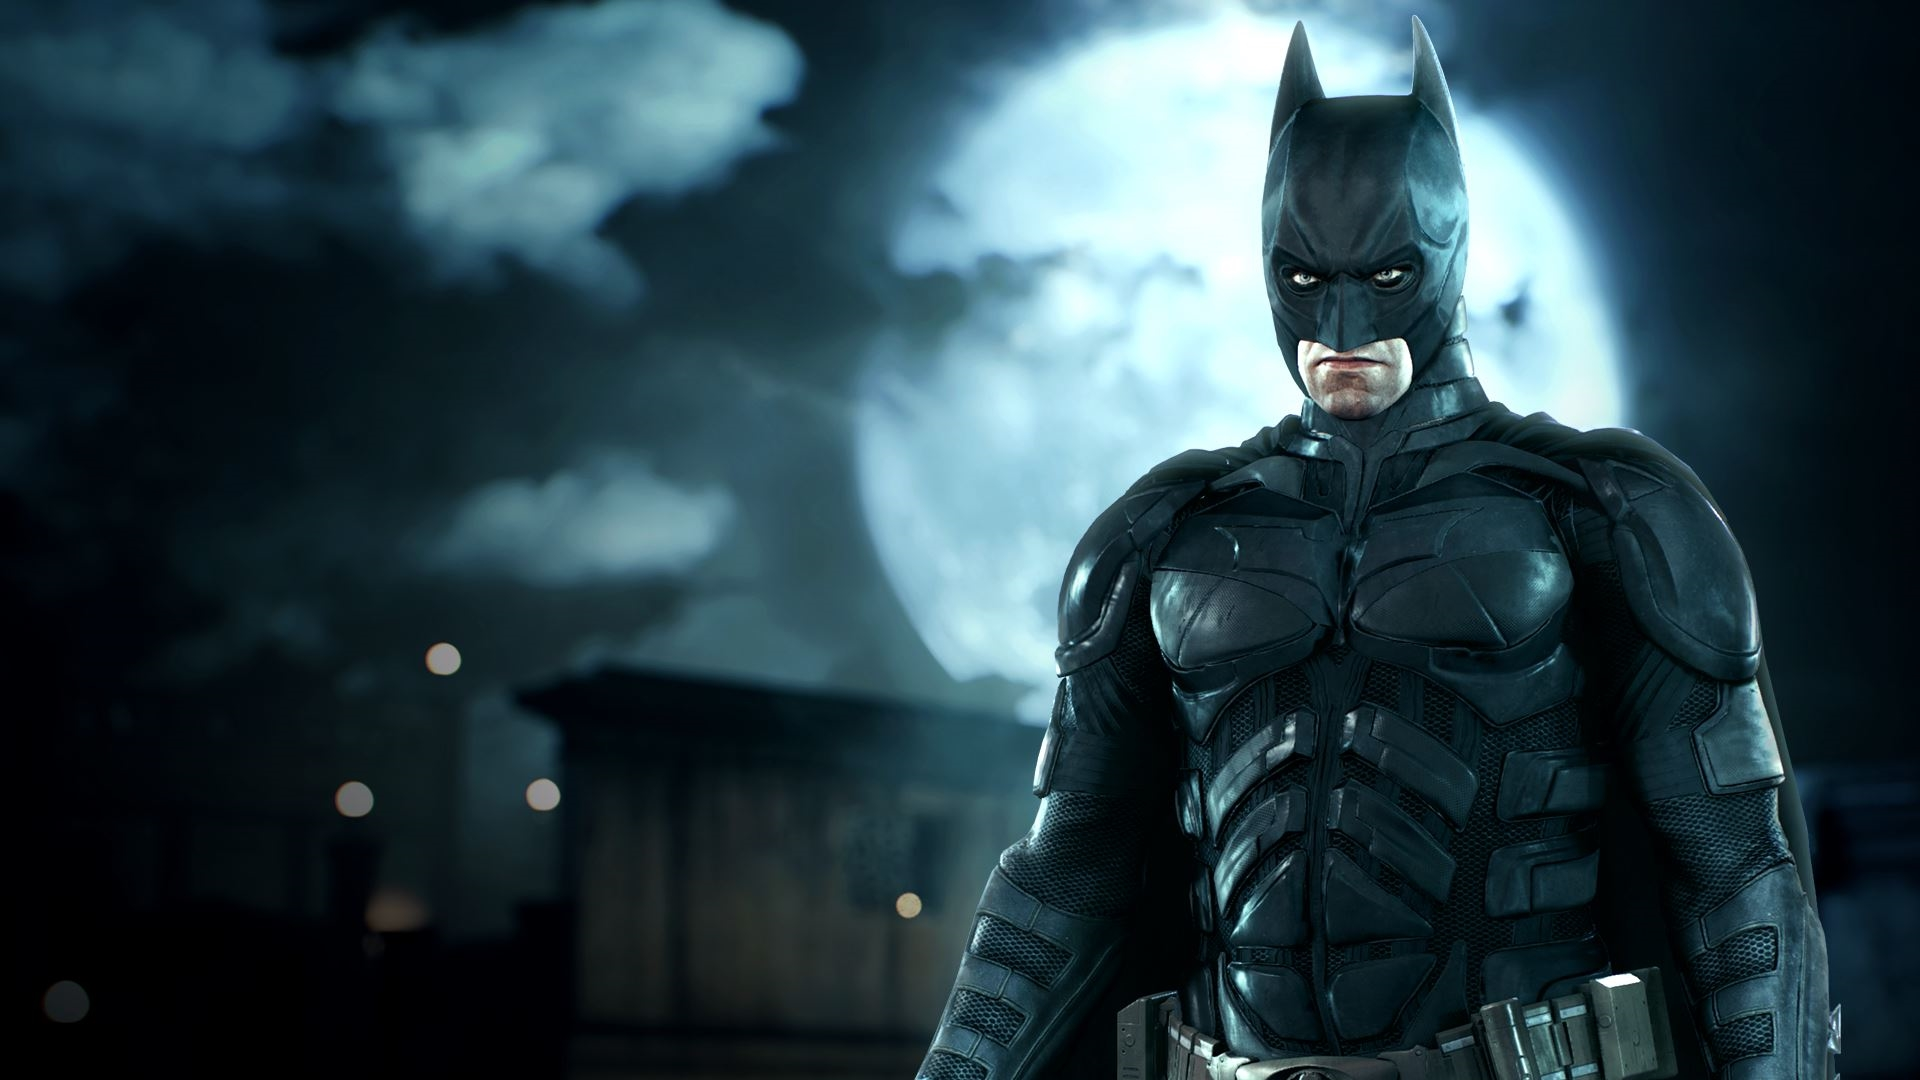 Pubg Wallpaper Hd Reddit Two More Batman Arkham Knight Dlcs Available For Free To